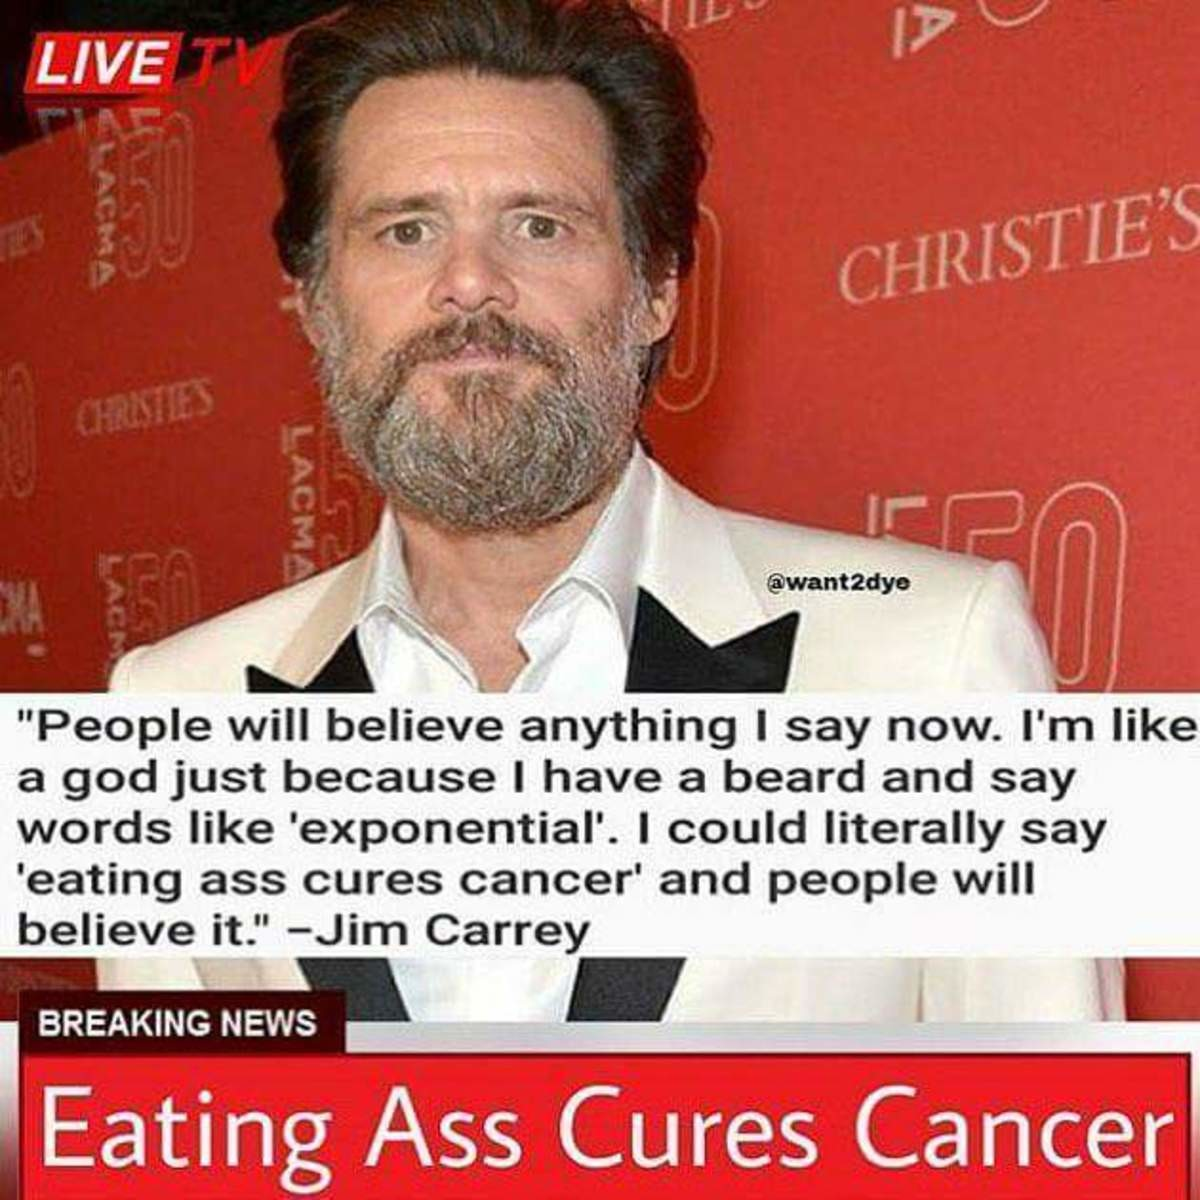 eating ass cures cancer. more at 11. | jim carrey | know your meme